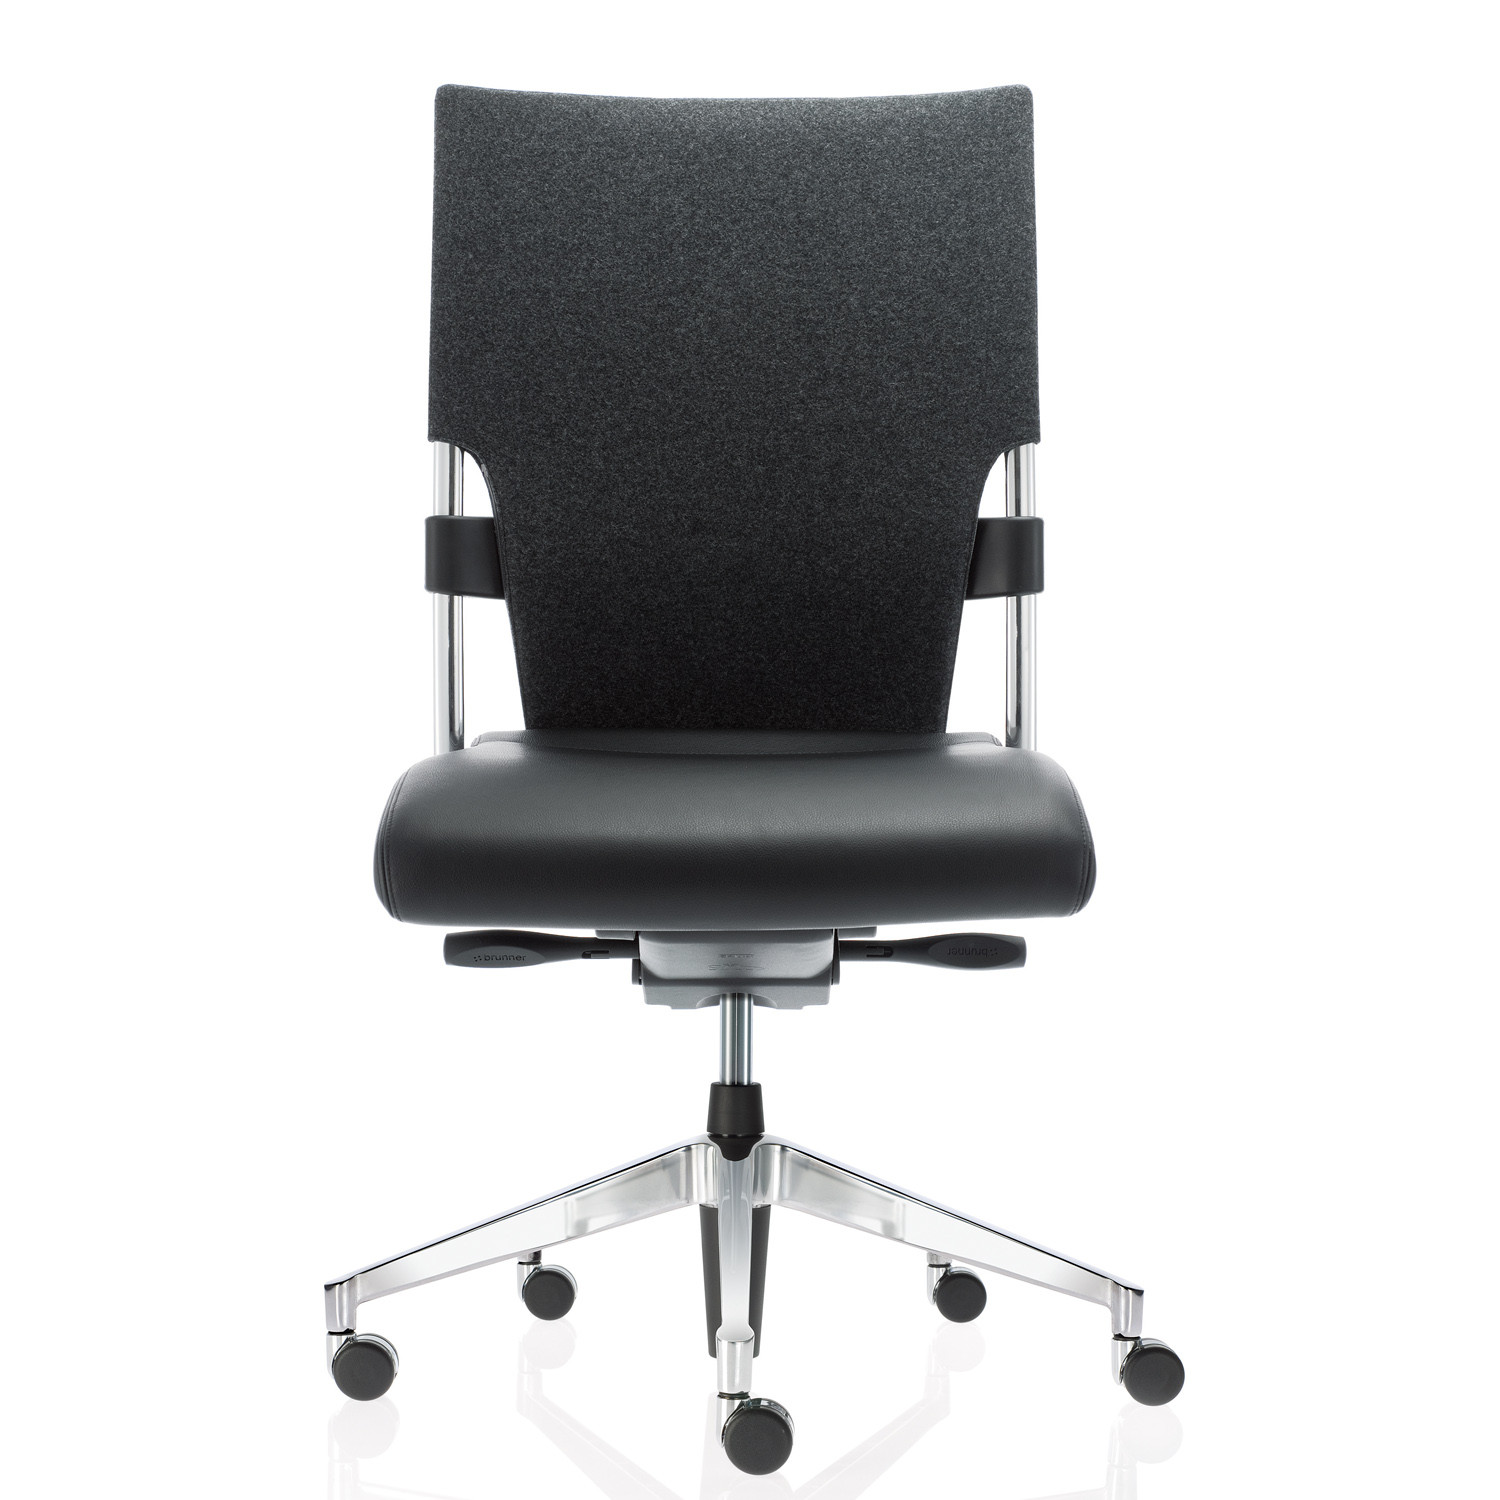 Drive Swivel Chair 122 Model